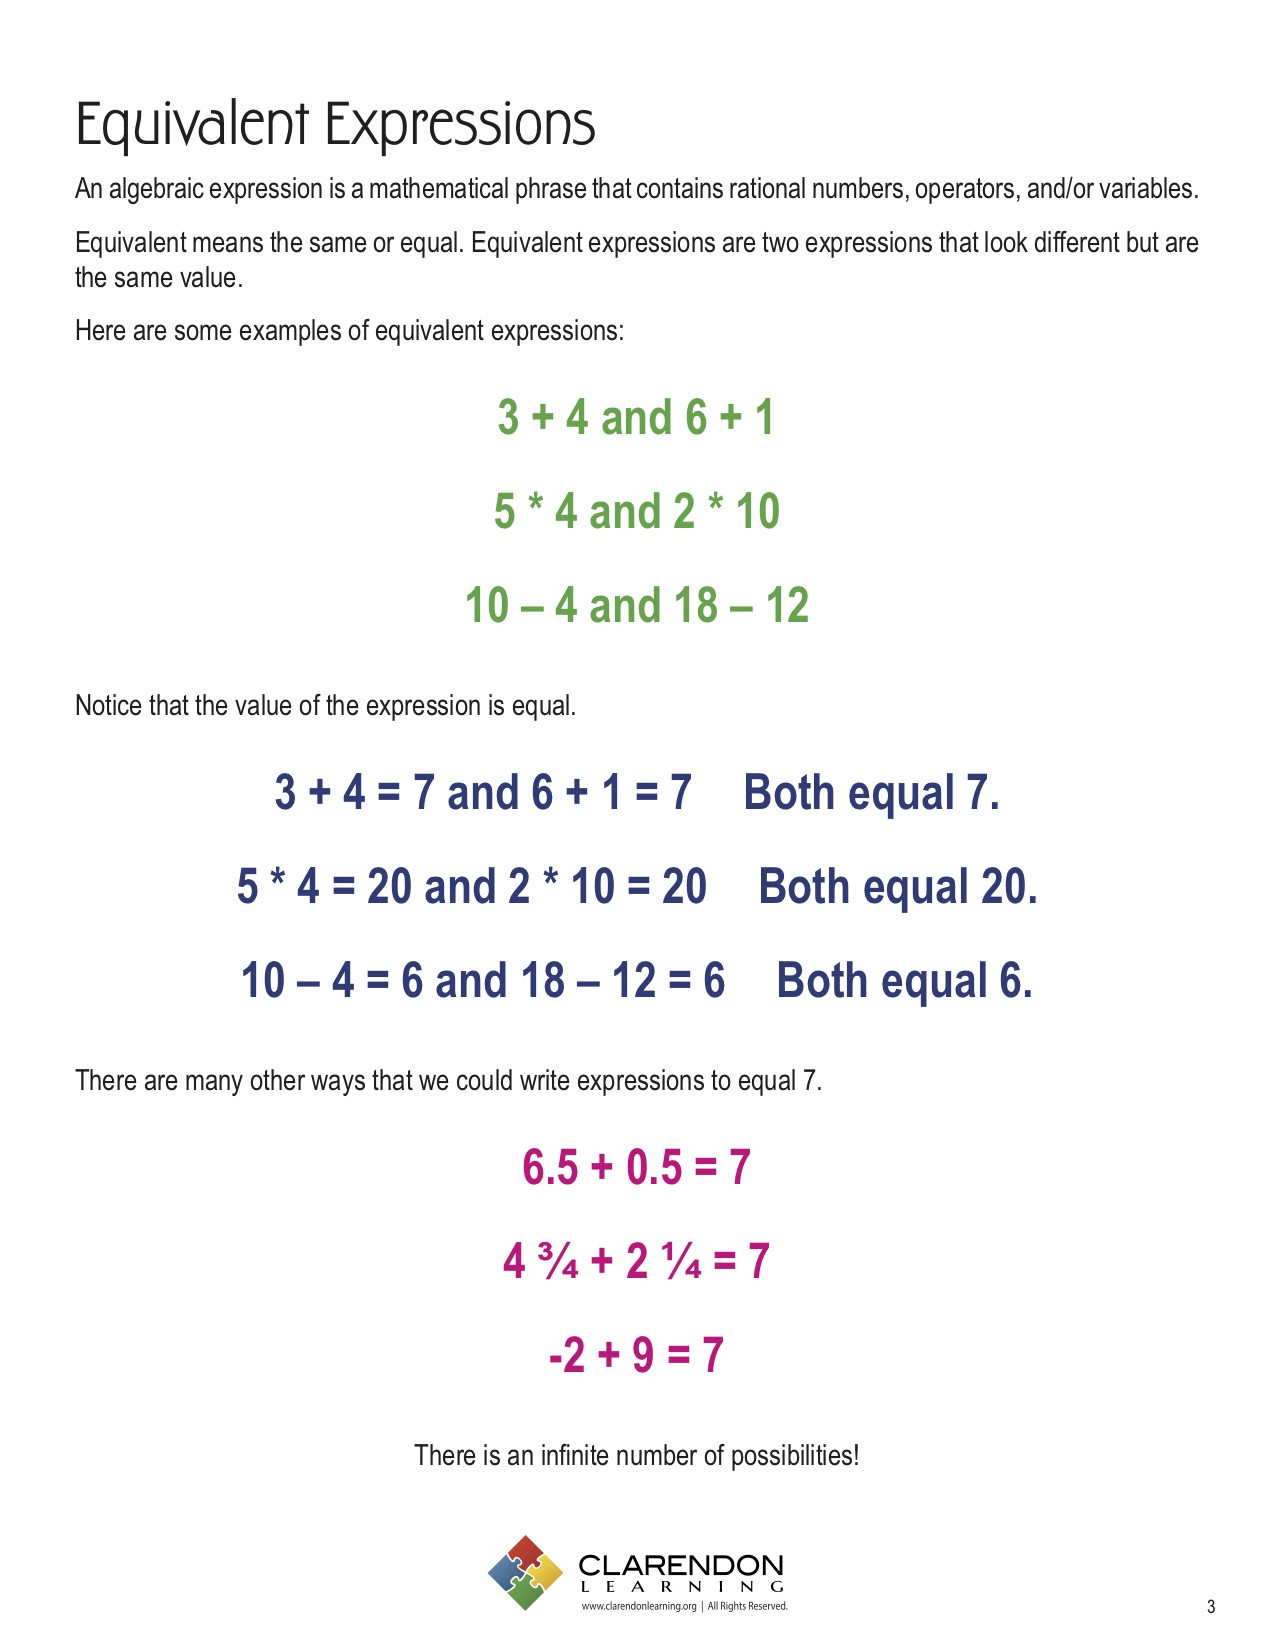 Equivalent Expressions Worksheet 6th Grade Equivalent Expressions Worksheets and Answers